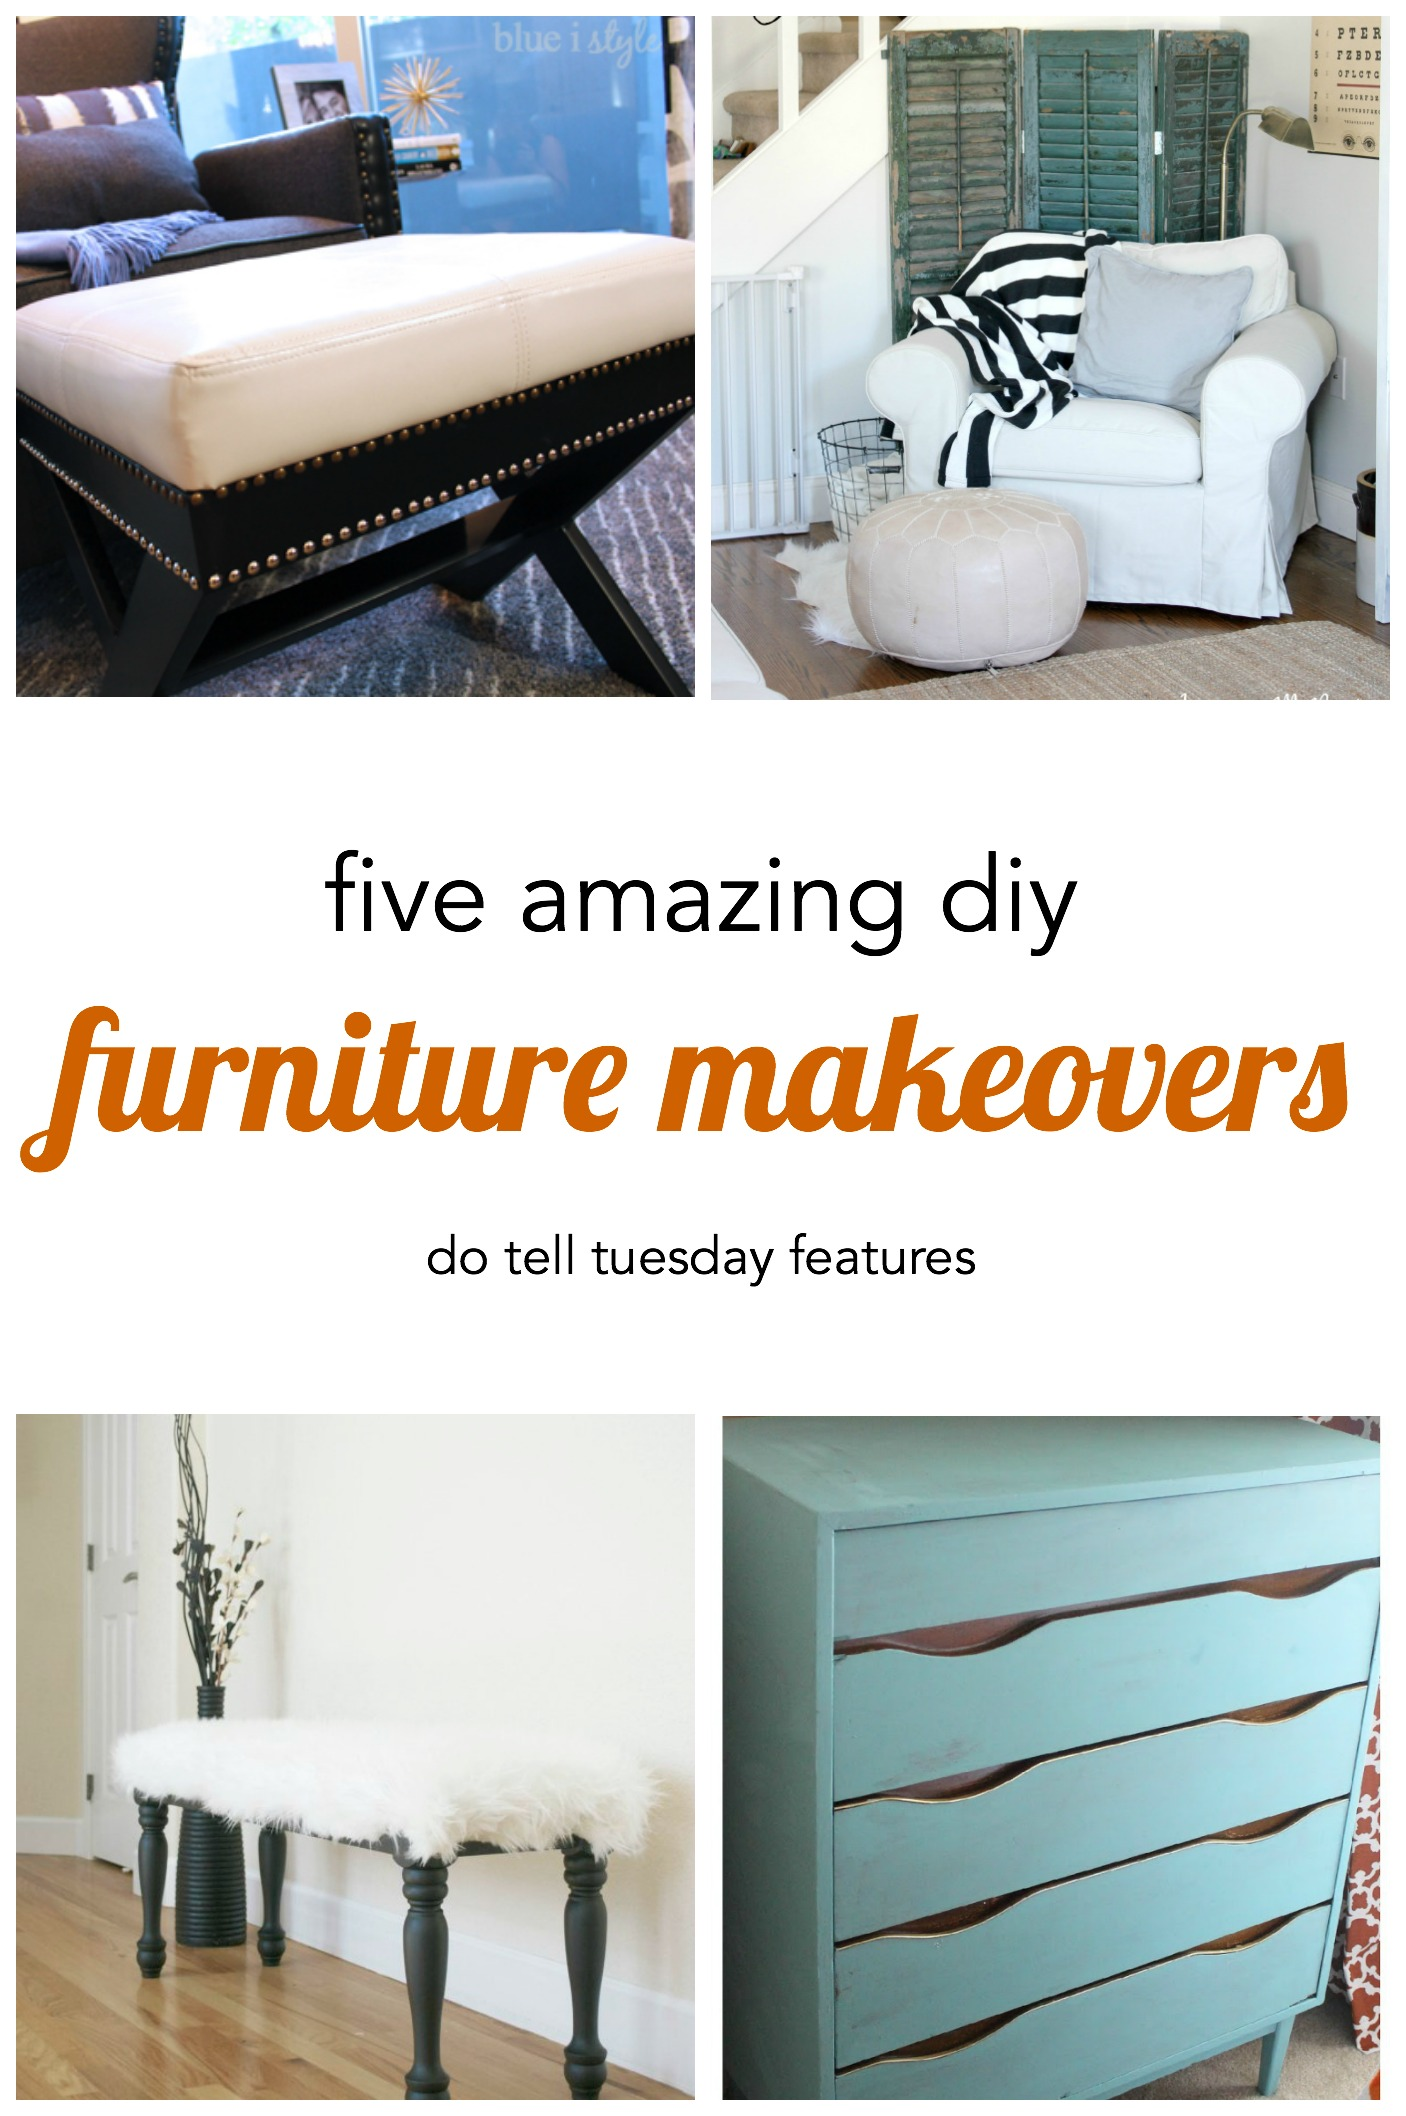 5 Diy Furniture Makeovers Do Tell Tuesday Mabey She